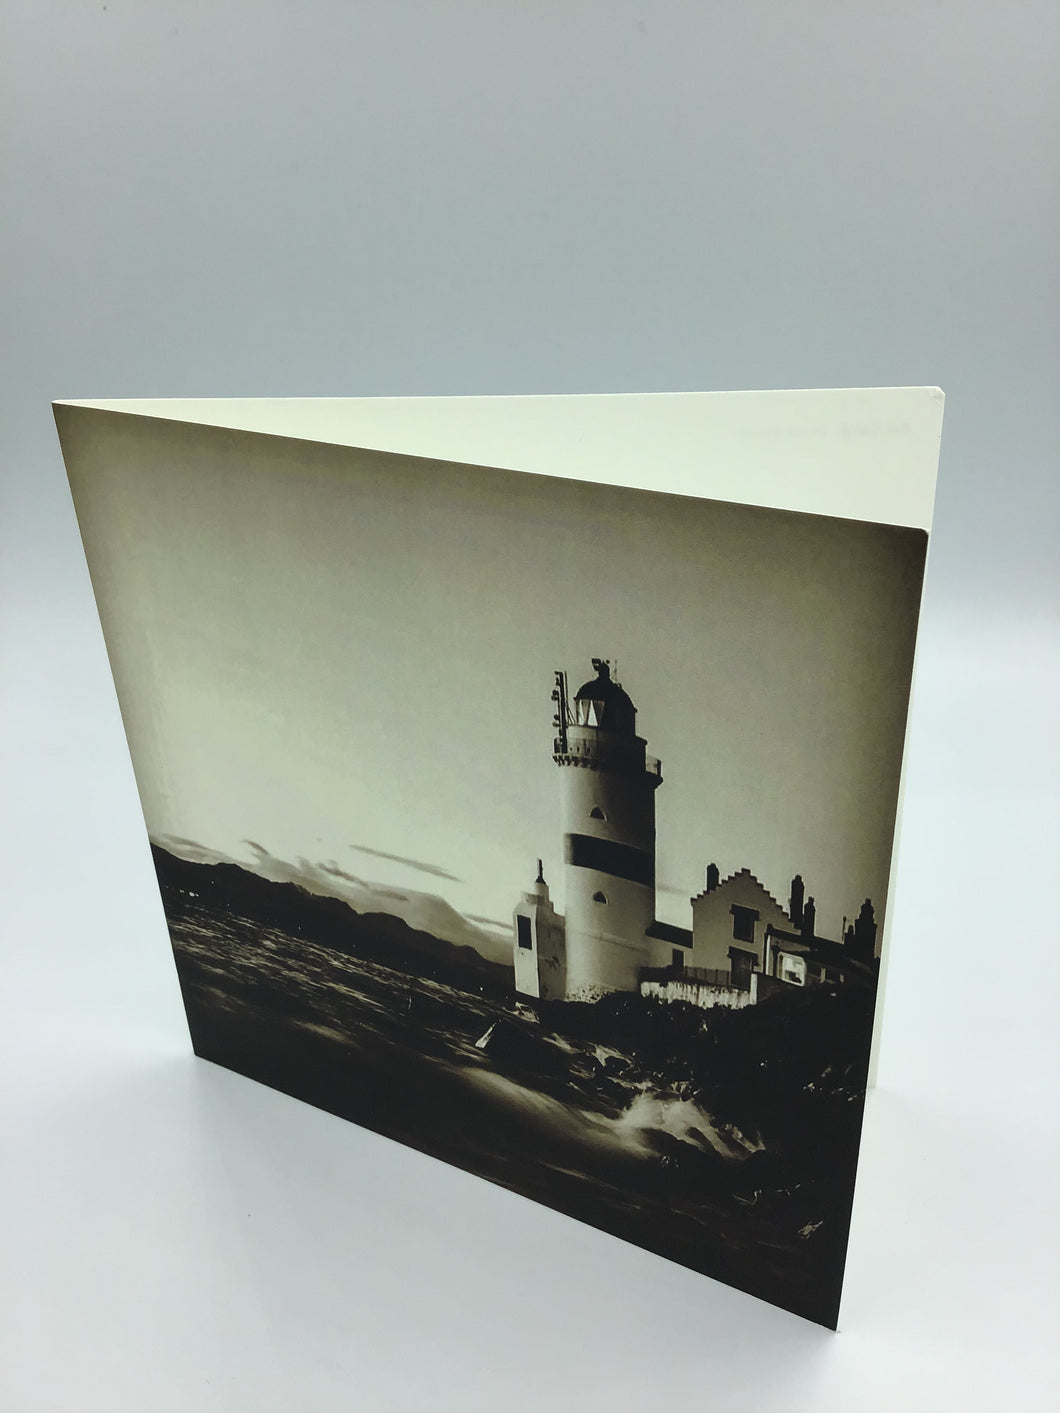 A sepia toned vintage style image of Cloch Lighthouse Gourock showing crashing waves on the shore